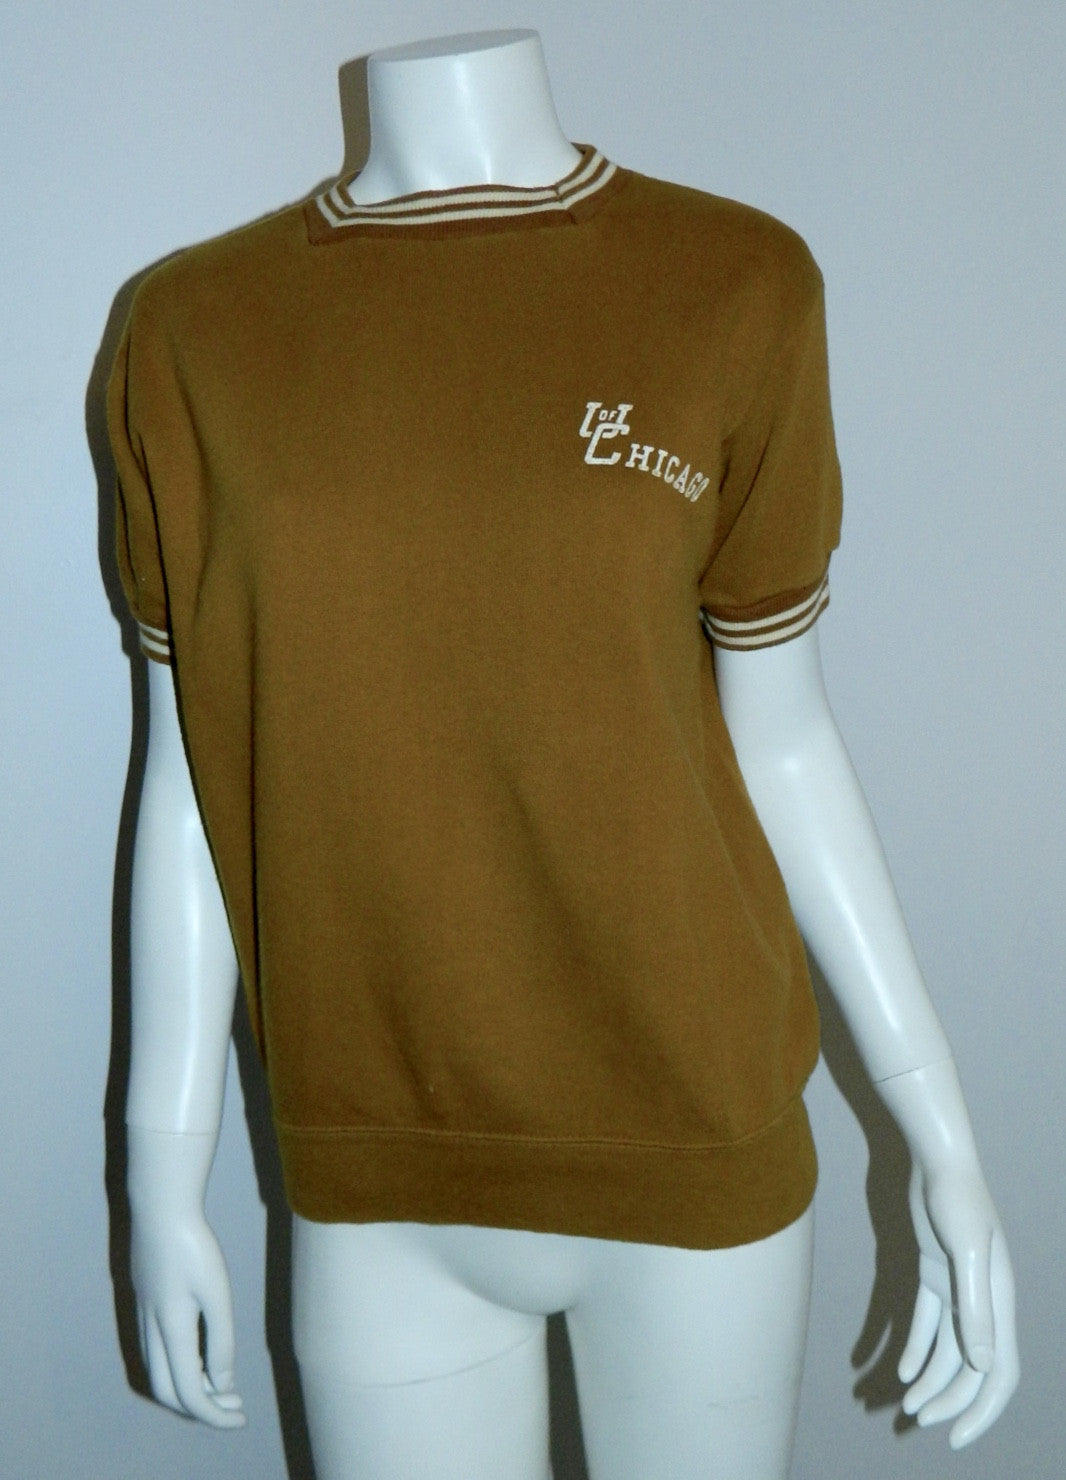 vintage 1960s sweatshirt University of Chicago tee shirt gold adult XS - S MCM